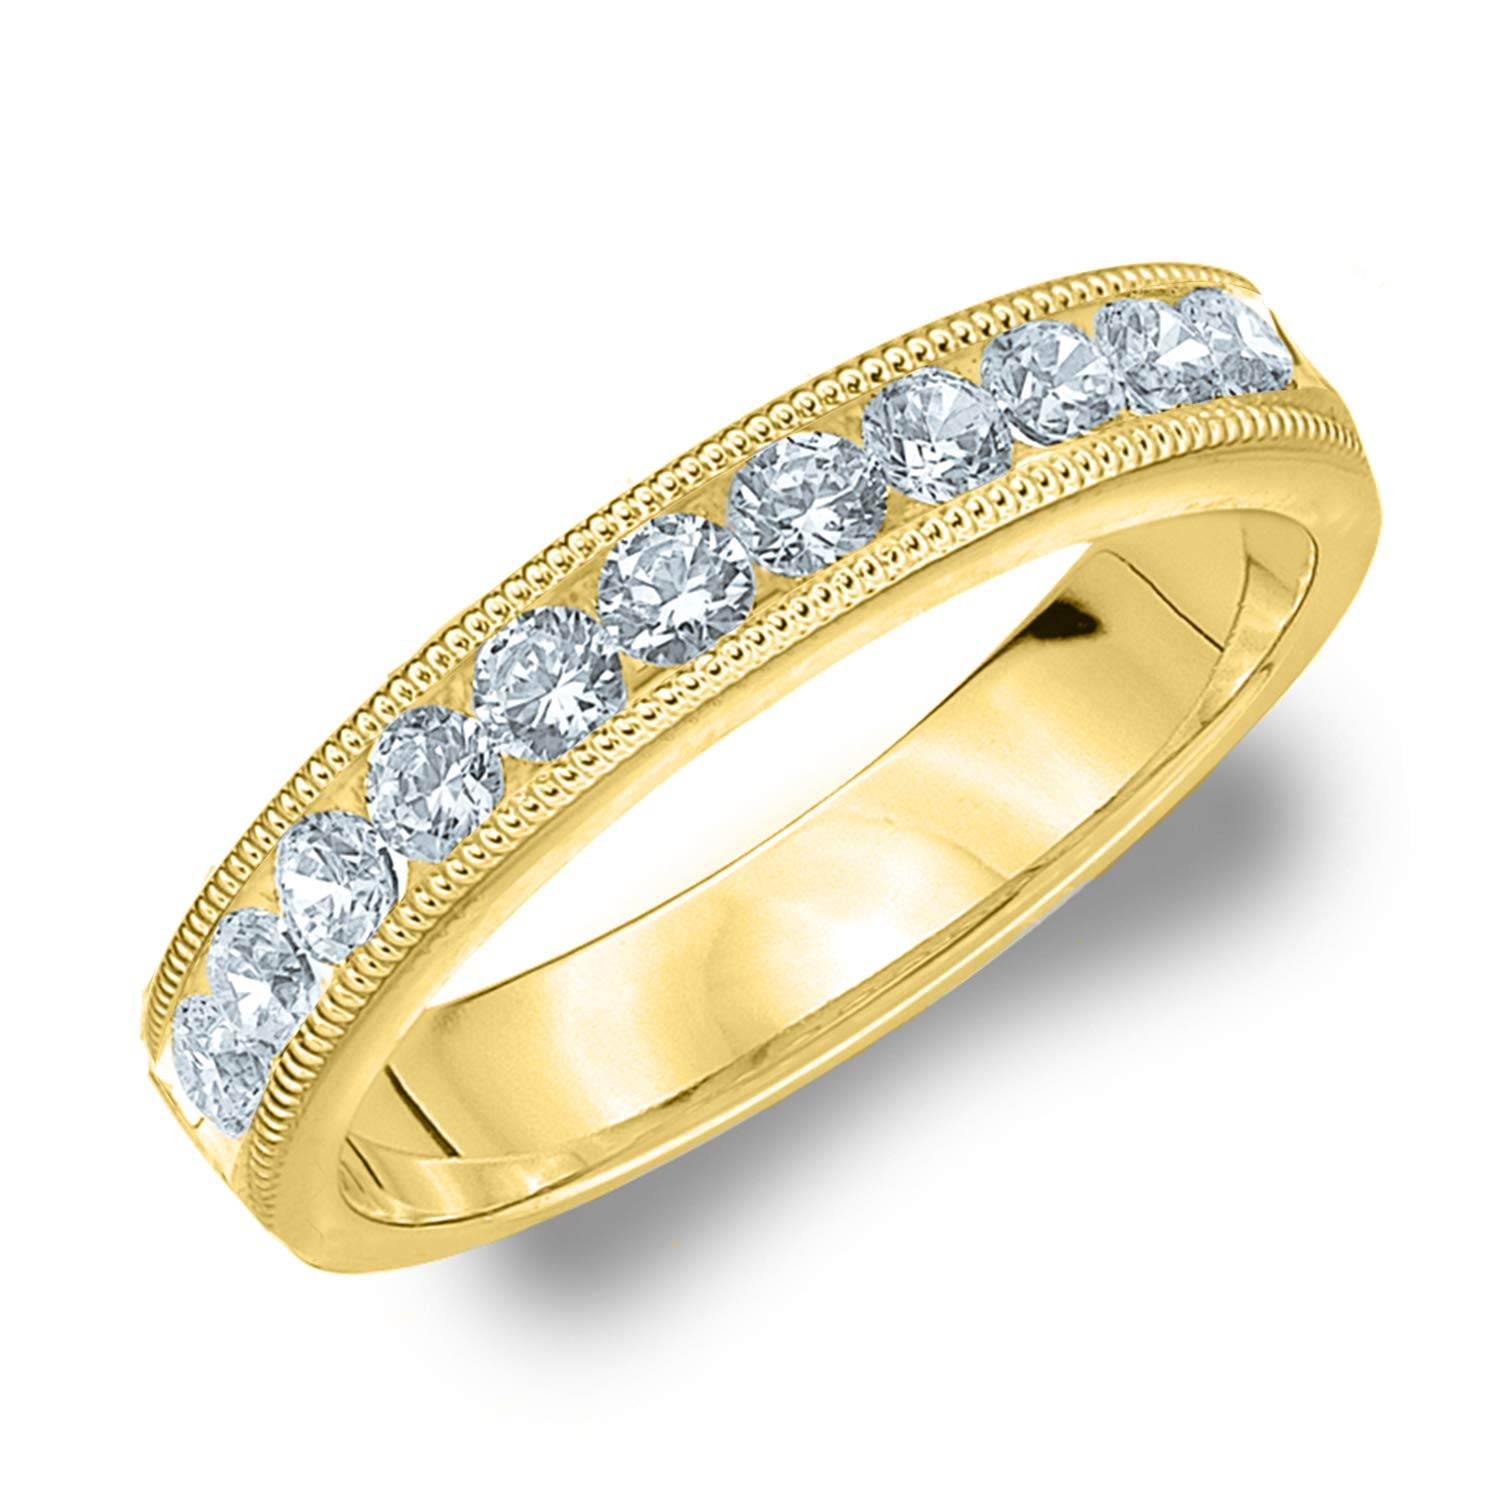 Timeless Diamond Wedding Band for Women.50 CTTW in 14K Yellow Gold, Finger Size 7